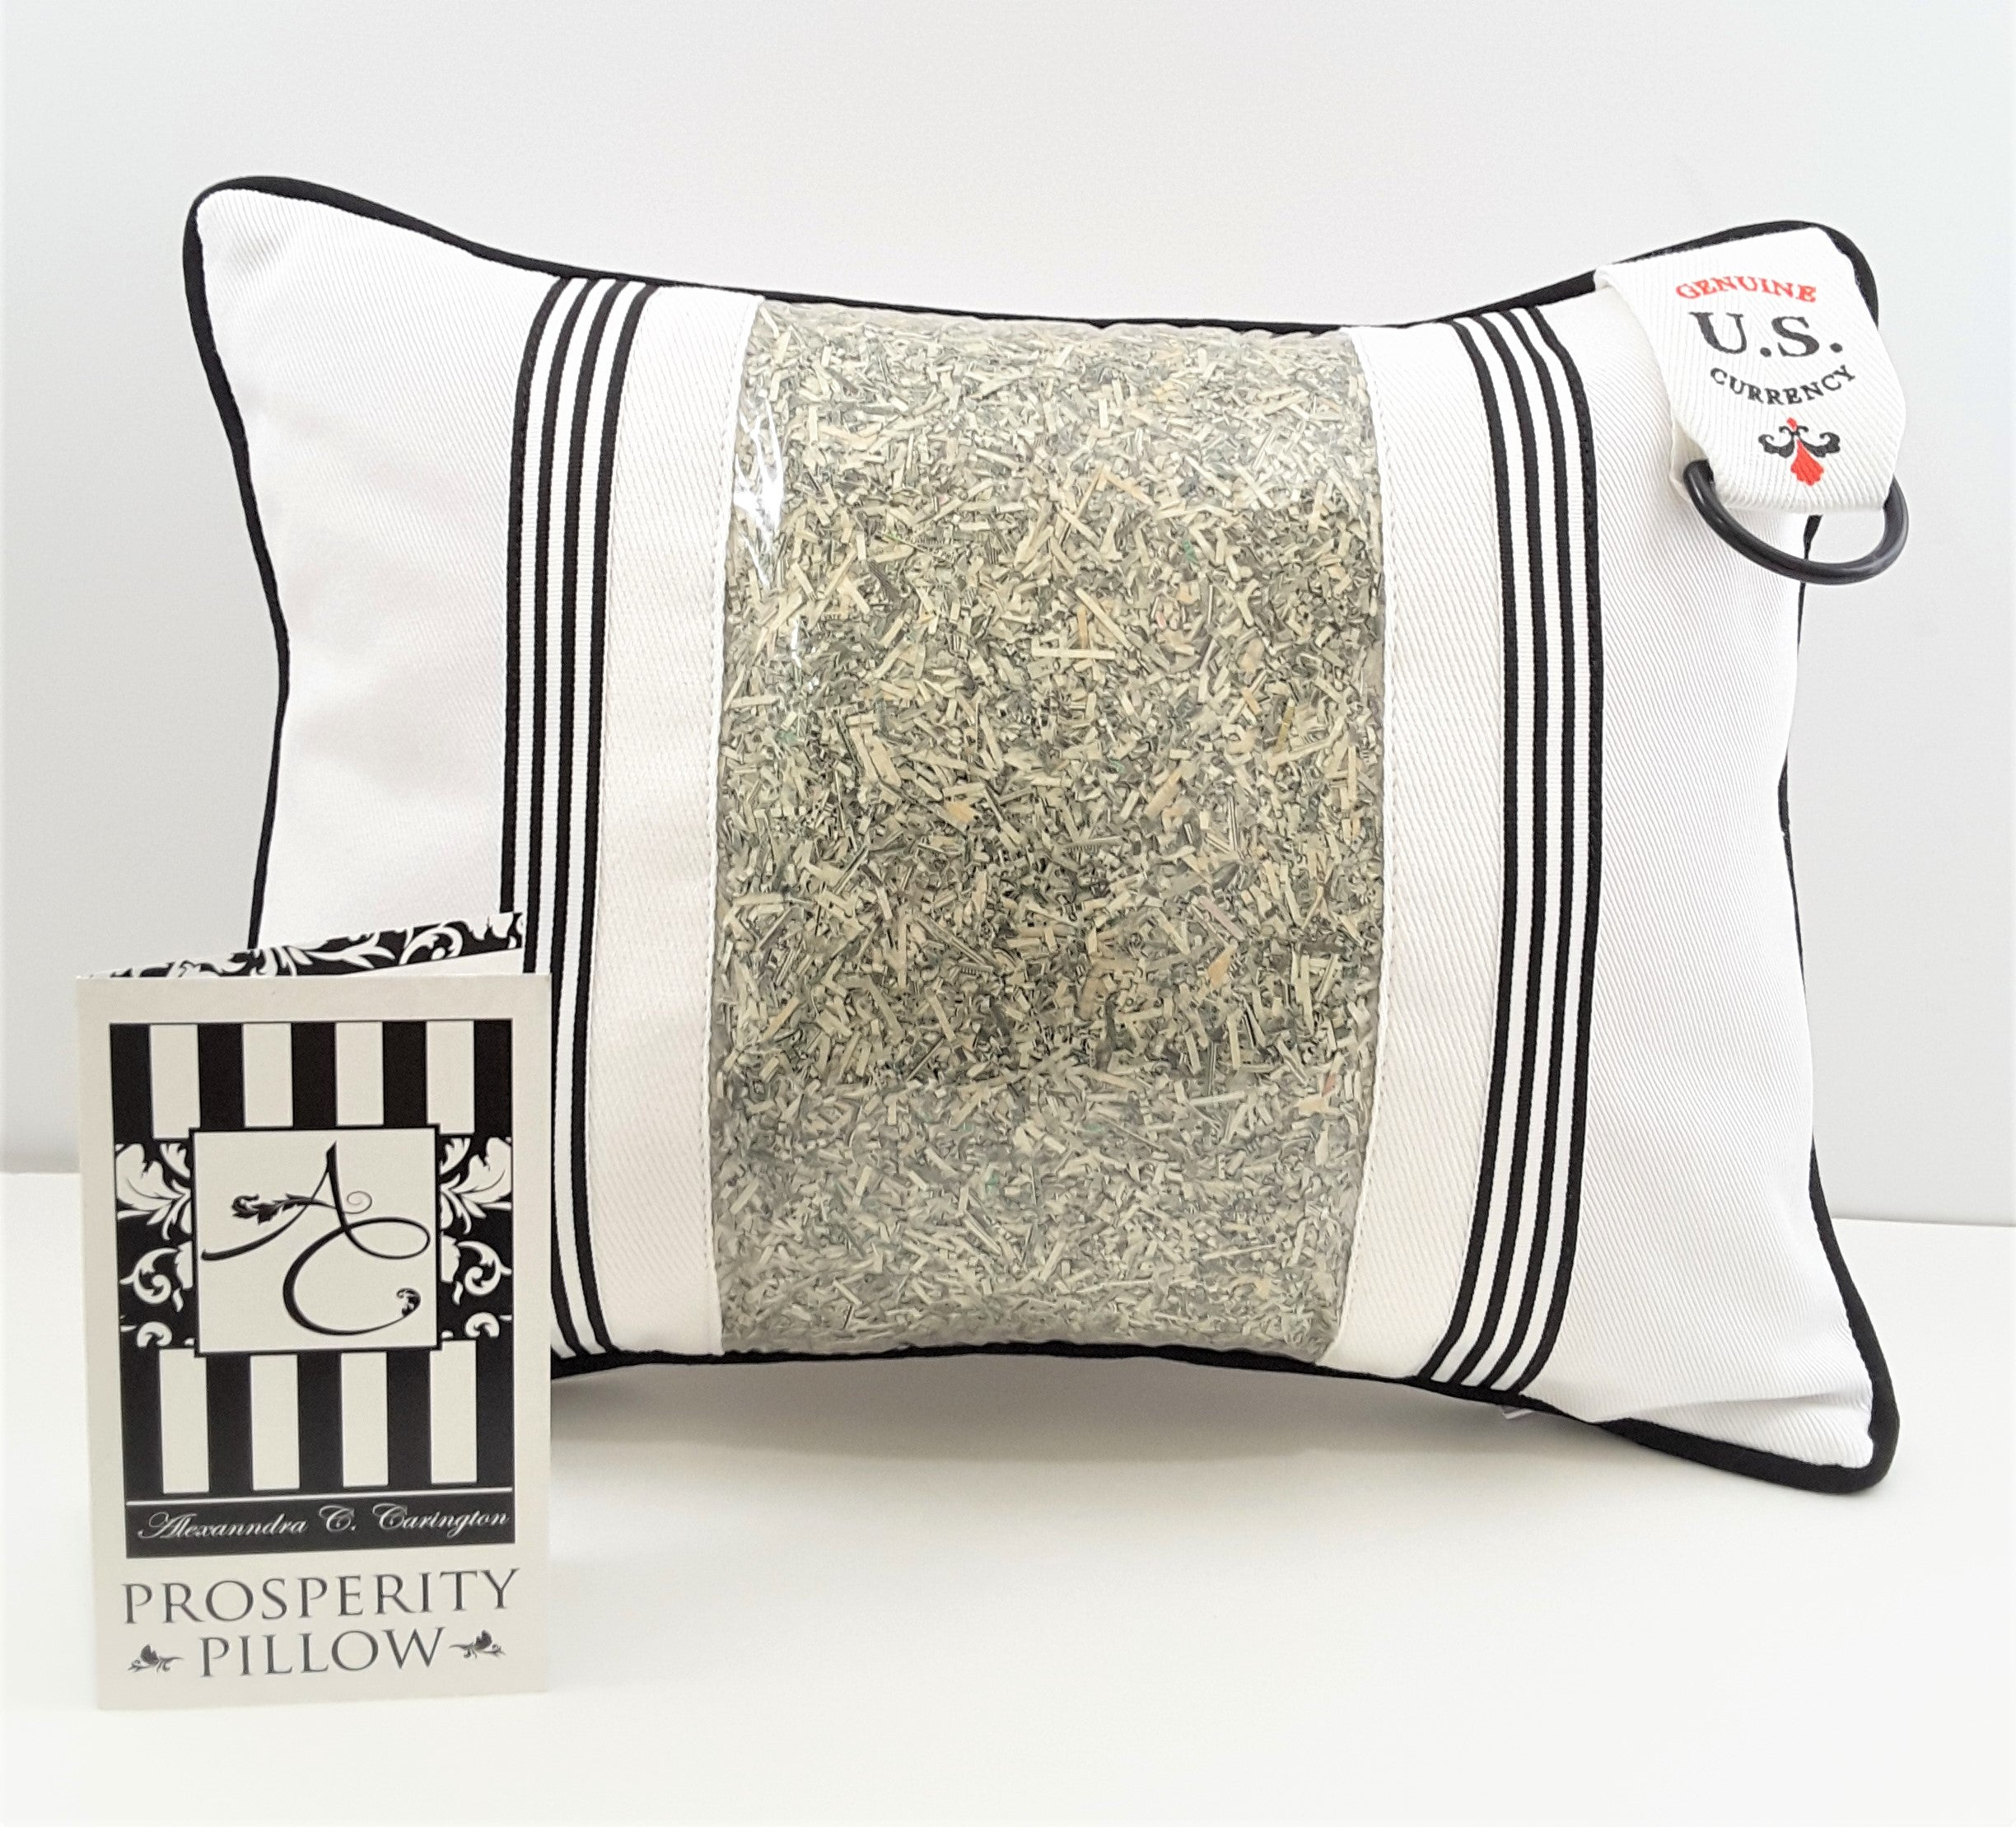 white on white prosperity pillow with genuine U.S. currency